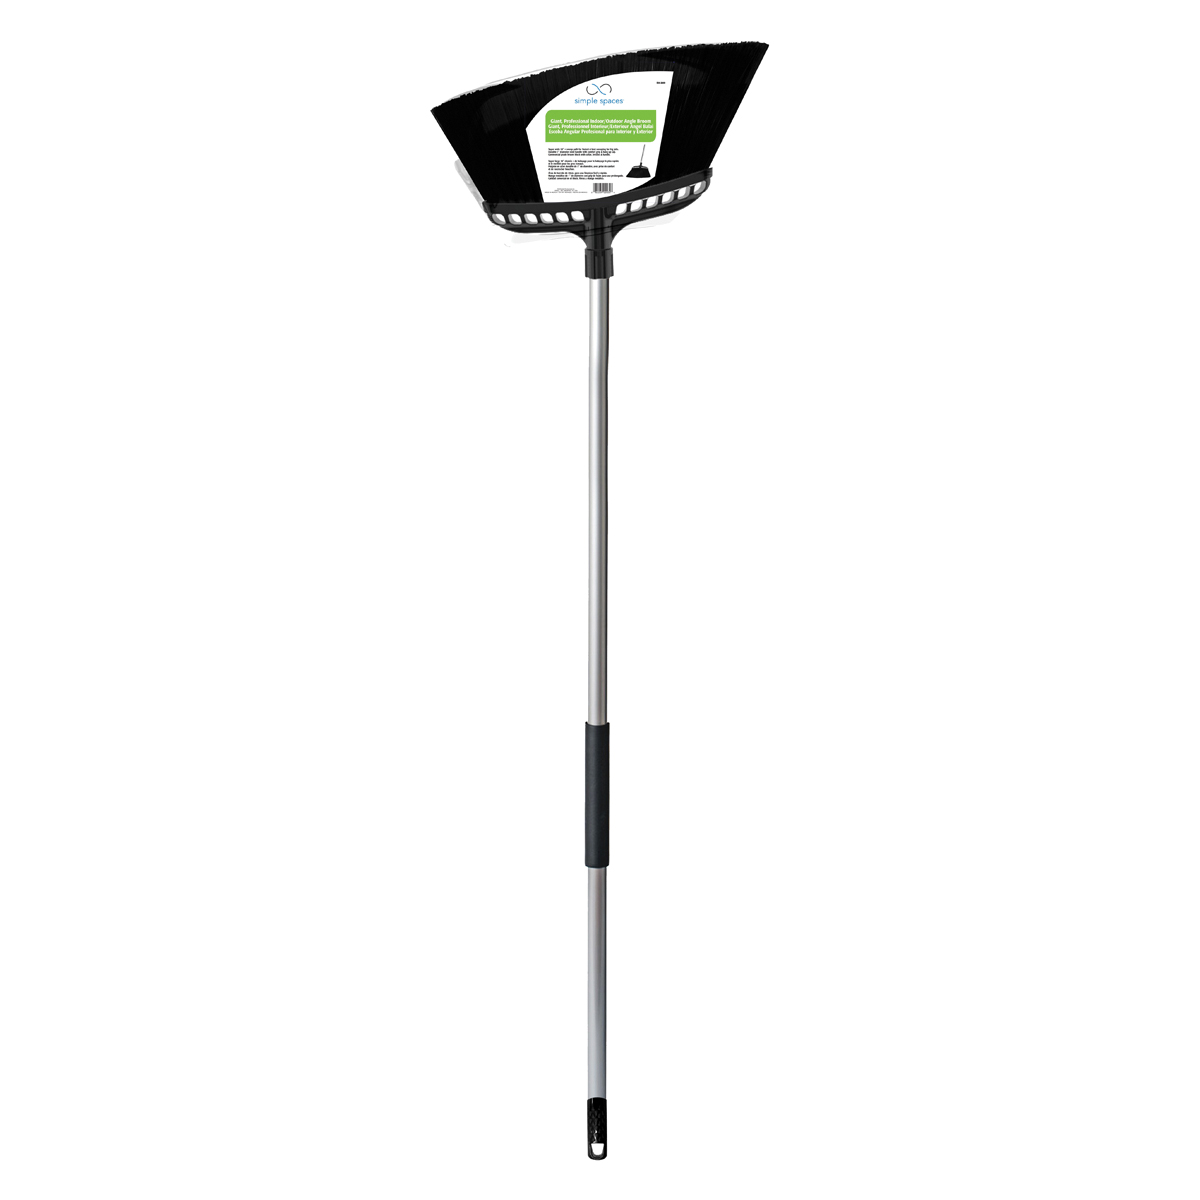 Picture of Simple Spaces 2032 Angle Broom, 11 in Sweep Face, Polypropylene Bristle, Steel Handle